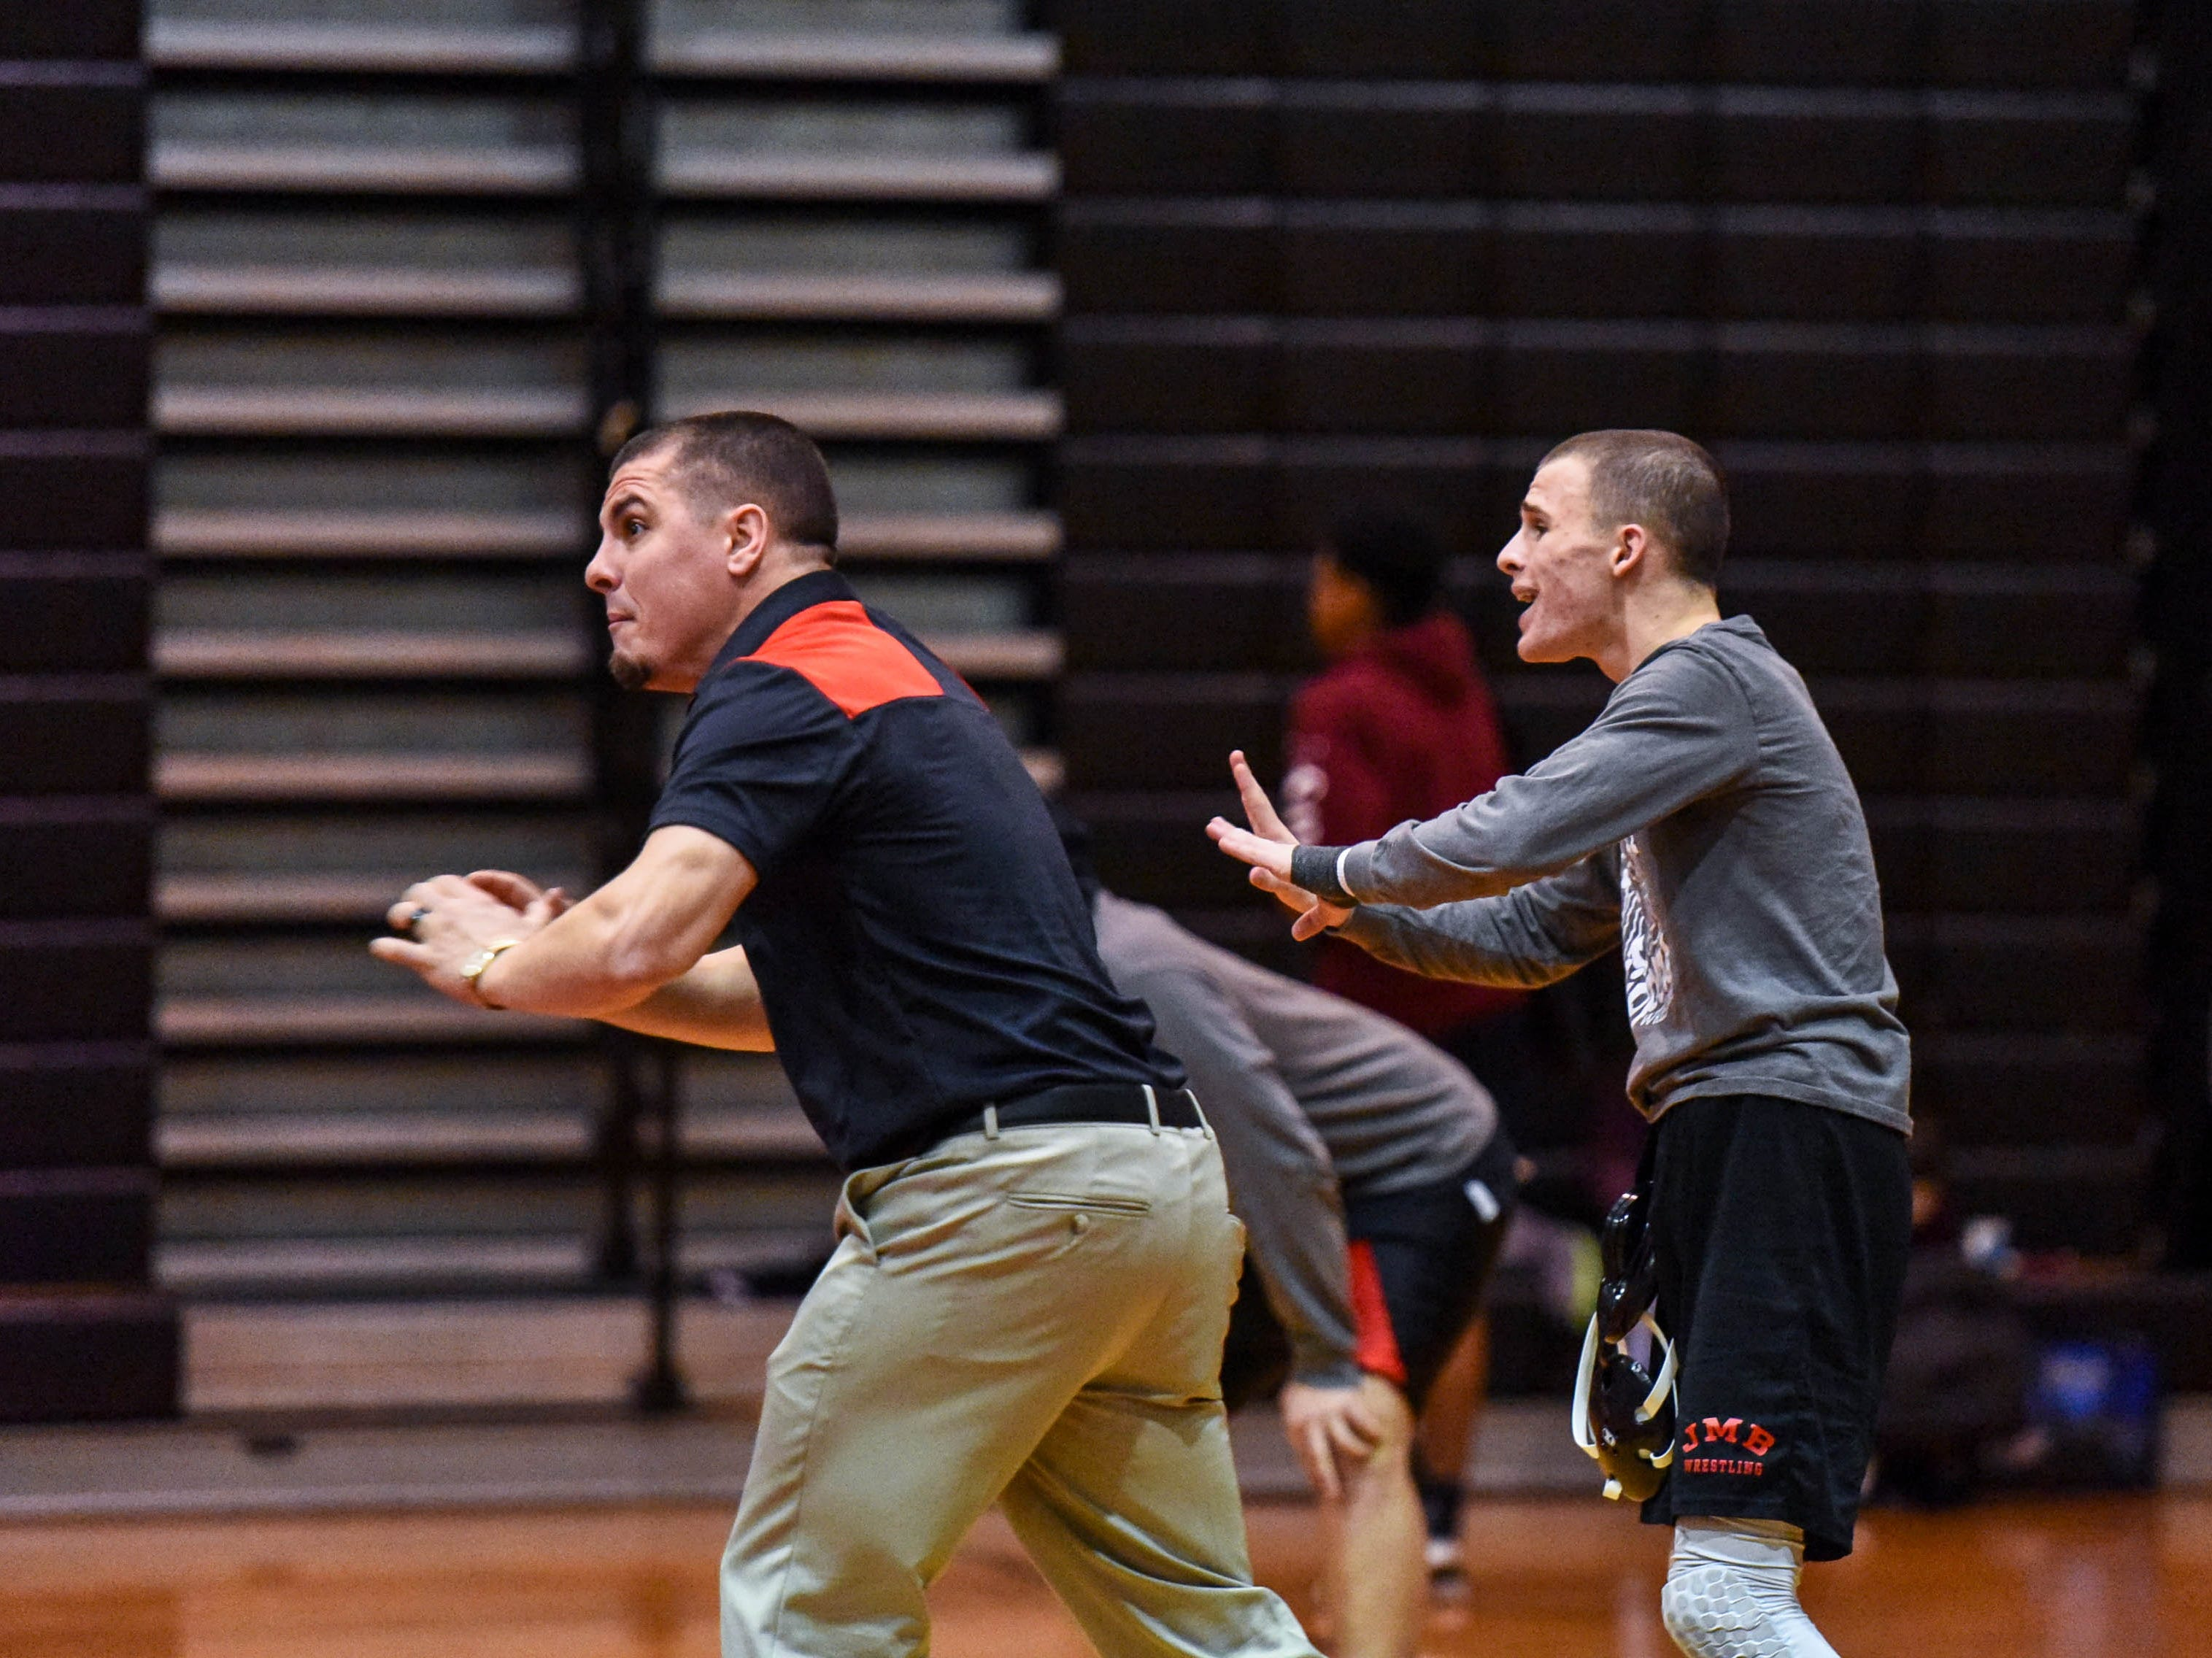 Bennett coach Justin Bradley and wrestler Patrick Hugues yell instructions during the team's match against Kent Island's at Bennett High on Wednesday, Jan 9, 2018.